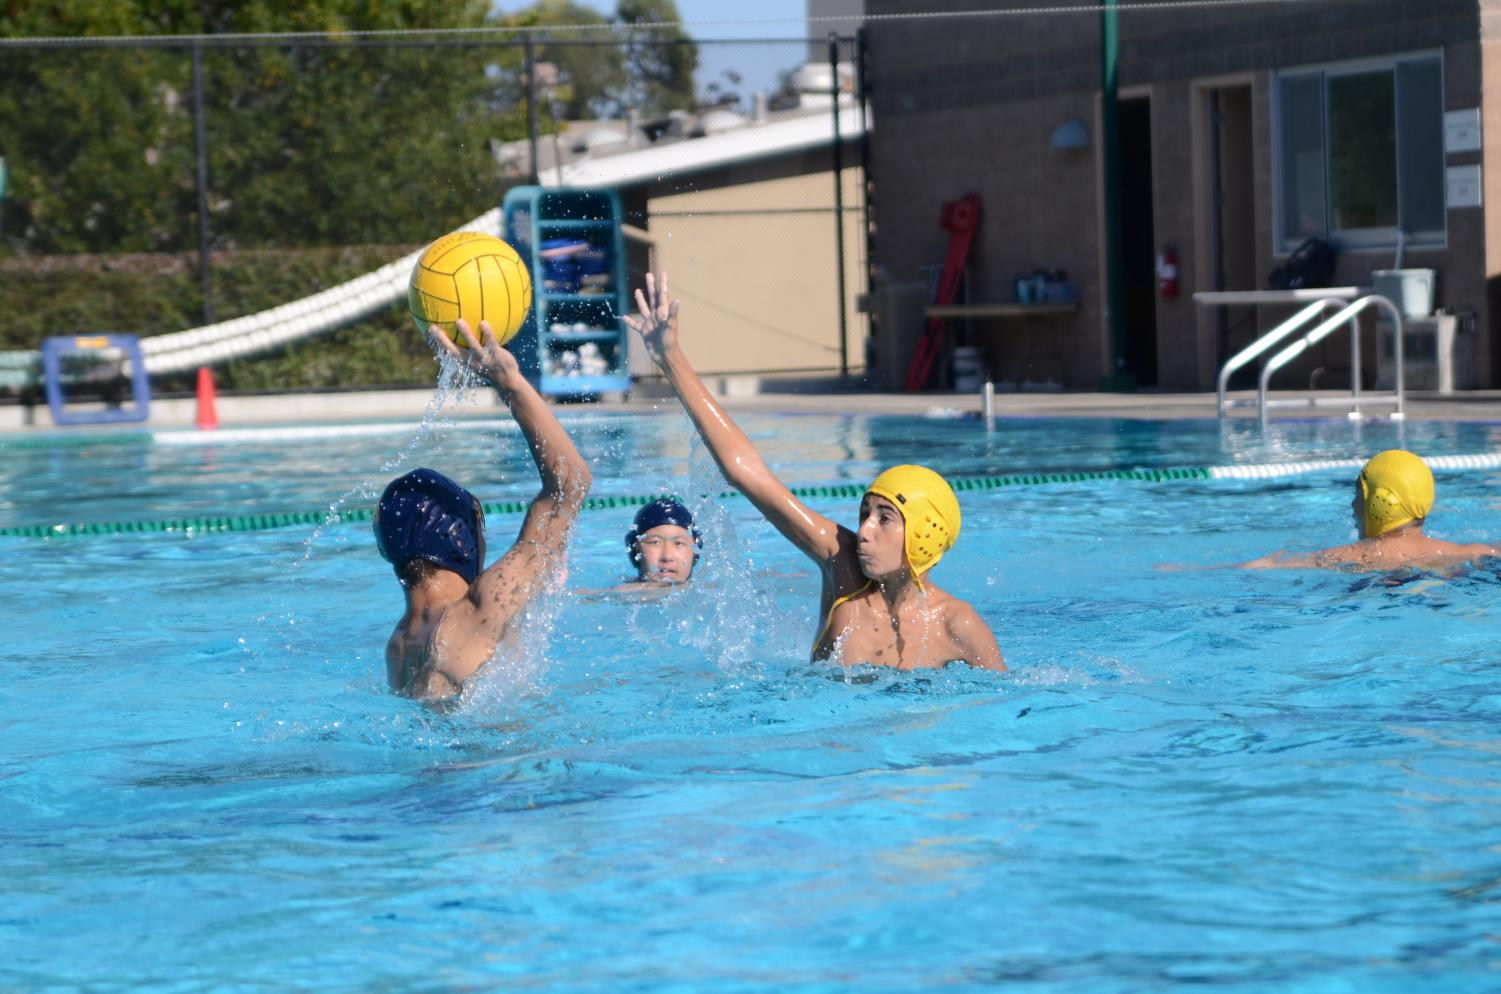 The+boys+water+polo+team+practices+at+the+Upper+School.+The+varsity+boys+water+polo+team+will+host+Milpitas+High+on+Sept.+10+for+their+first+home+game.